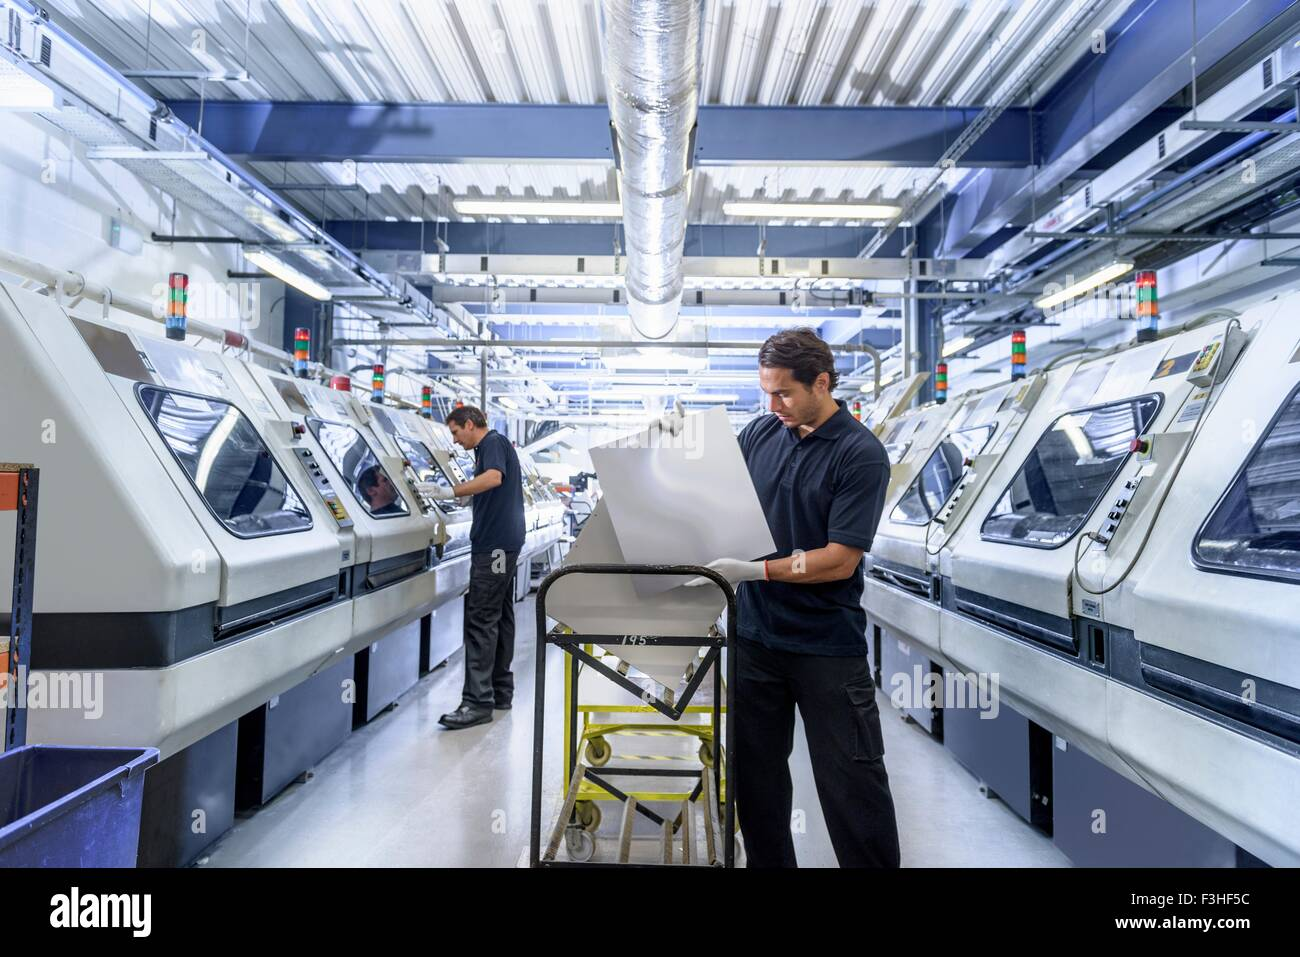 Workers in circuit board manufacturing factory - Stock Image